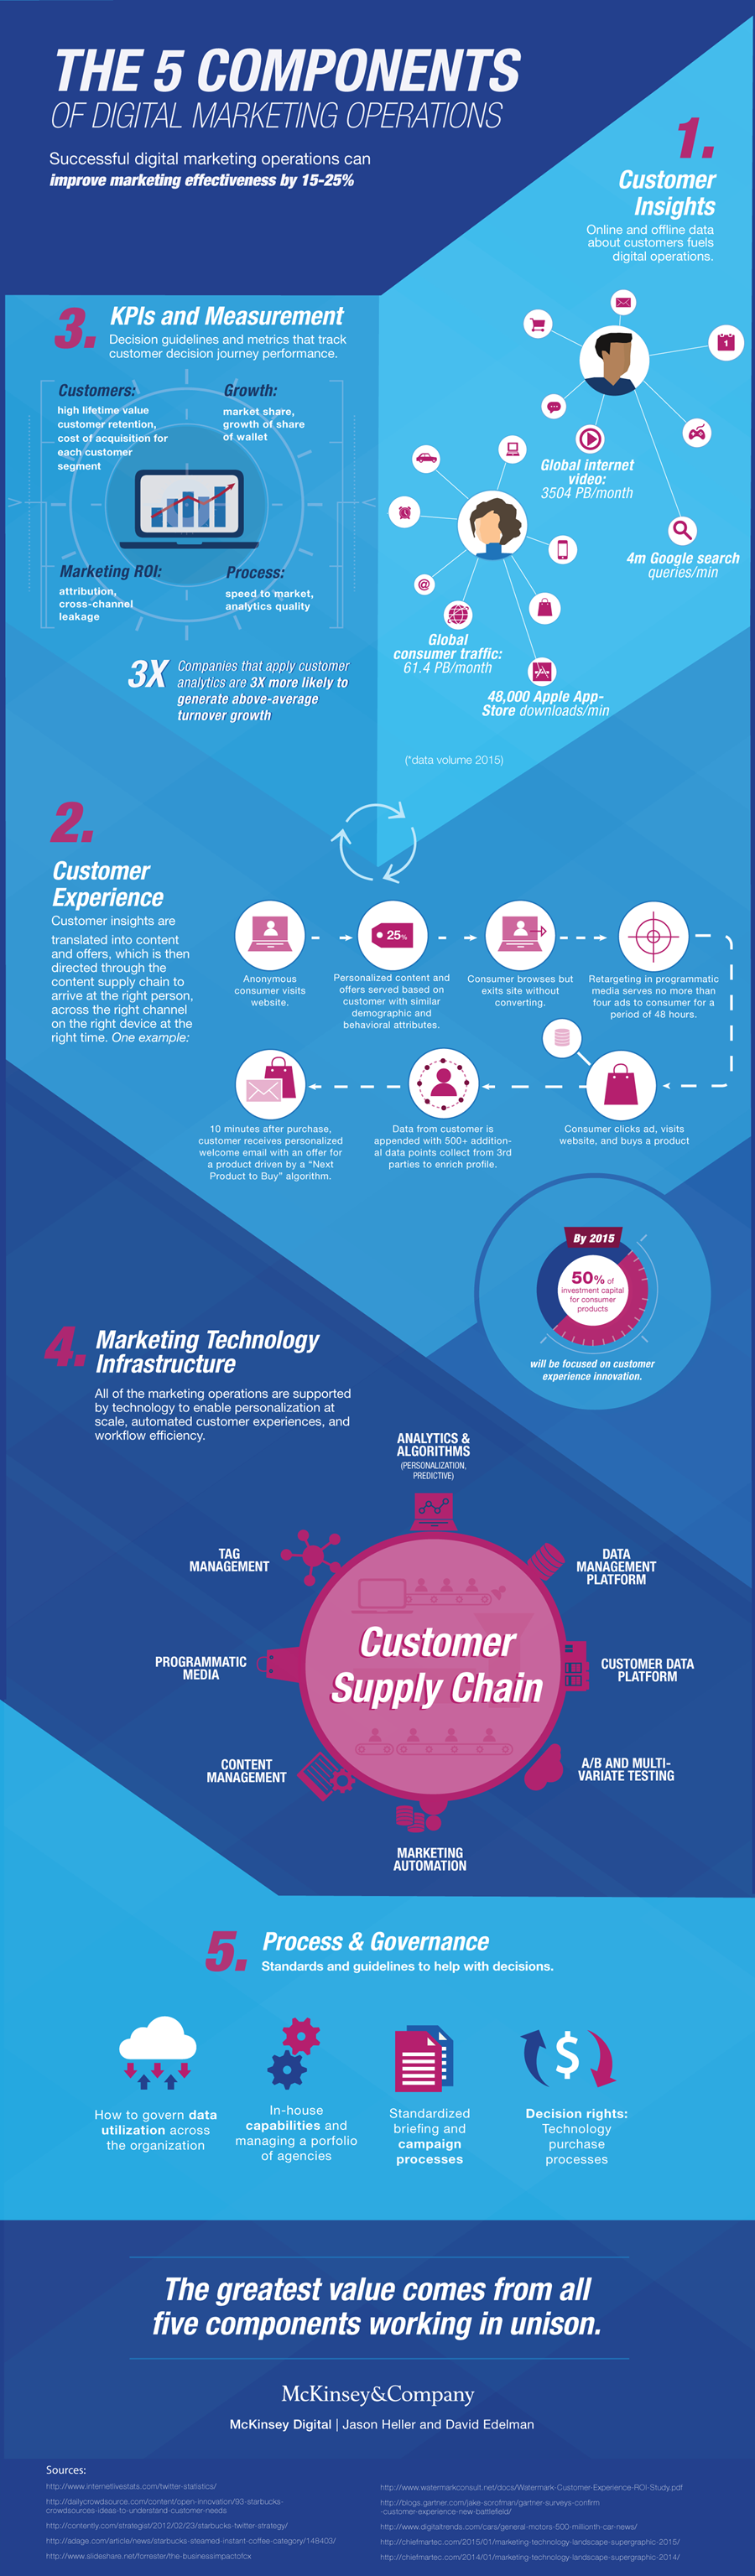 Infographic: The five components of digital marketing operations